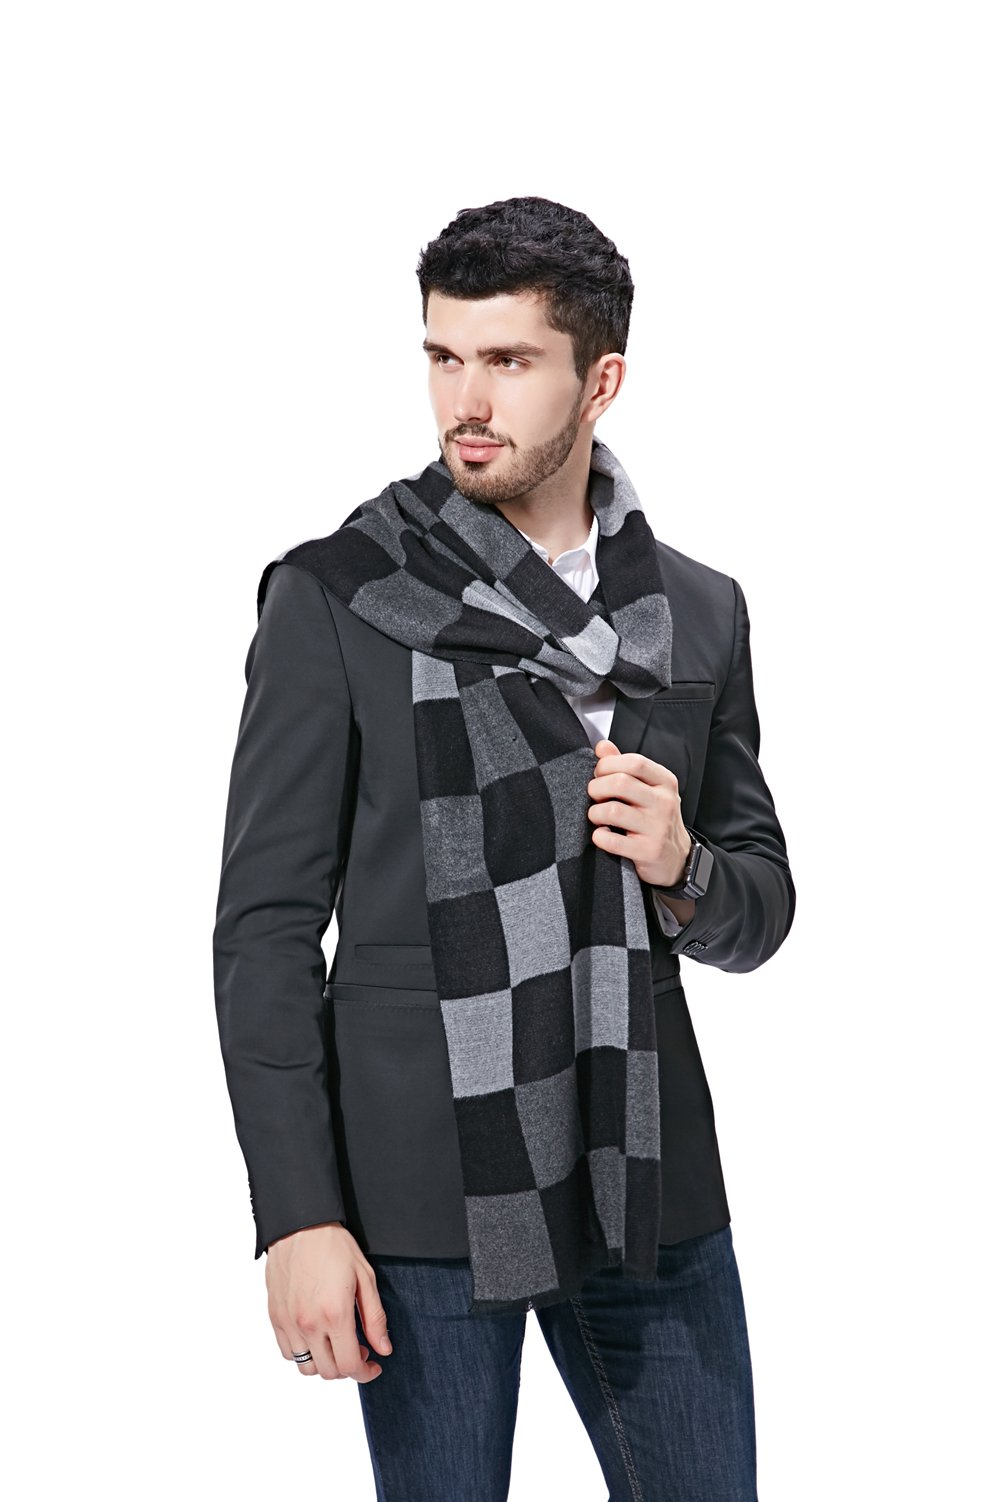 FULLRON Men Winter Cashmere Scarf Cotton Scarves - Black & Grey Plaid